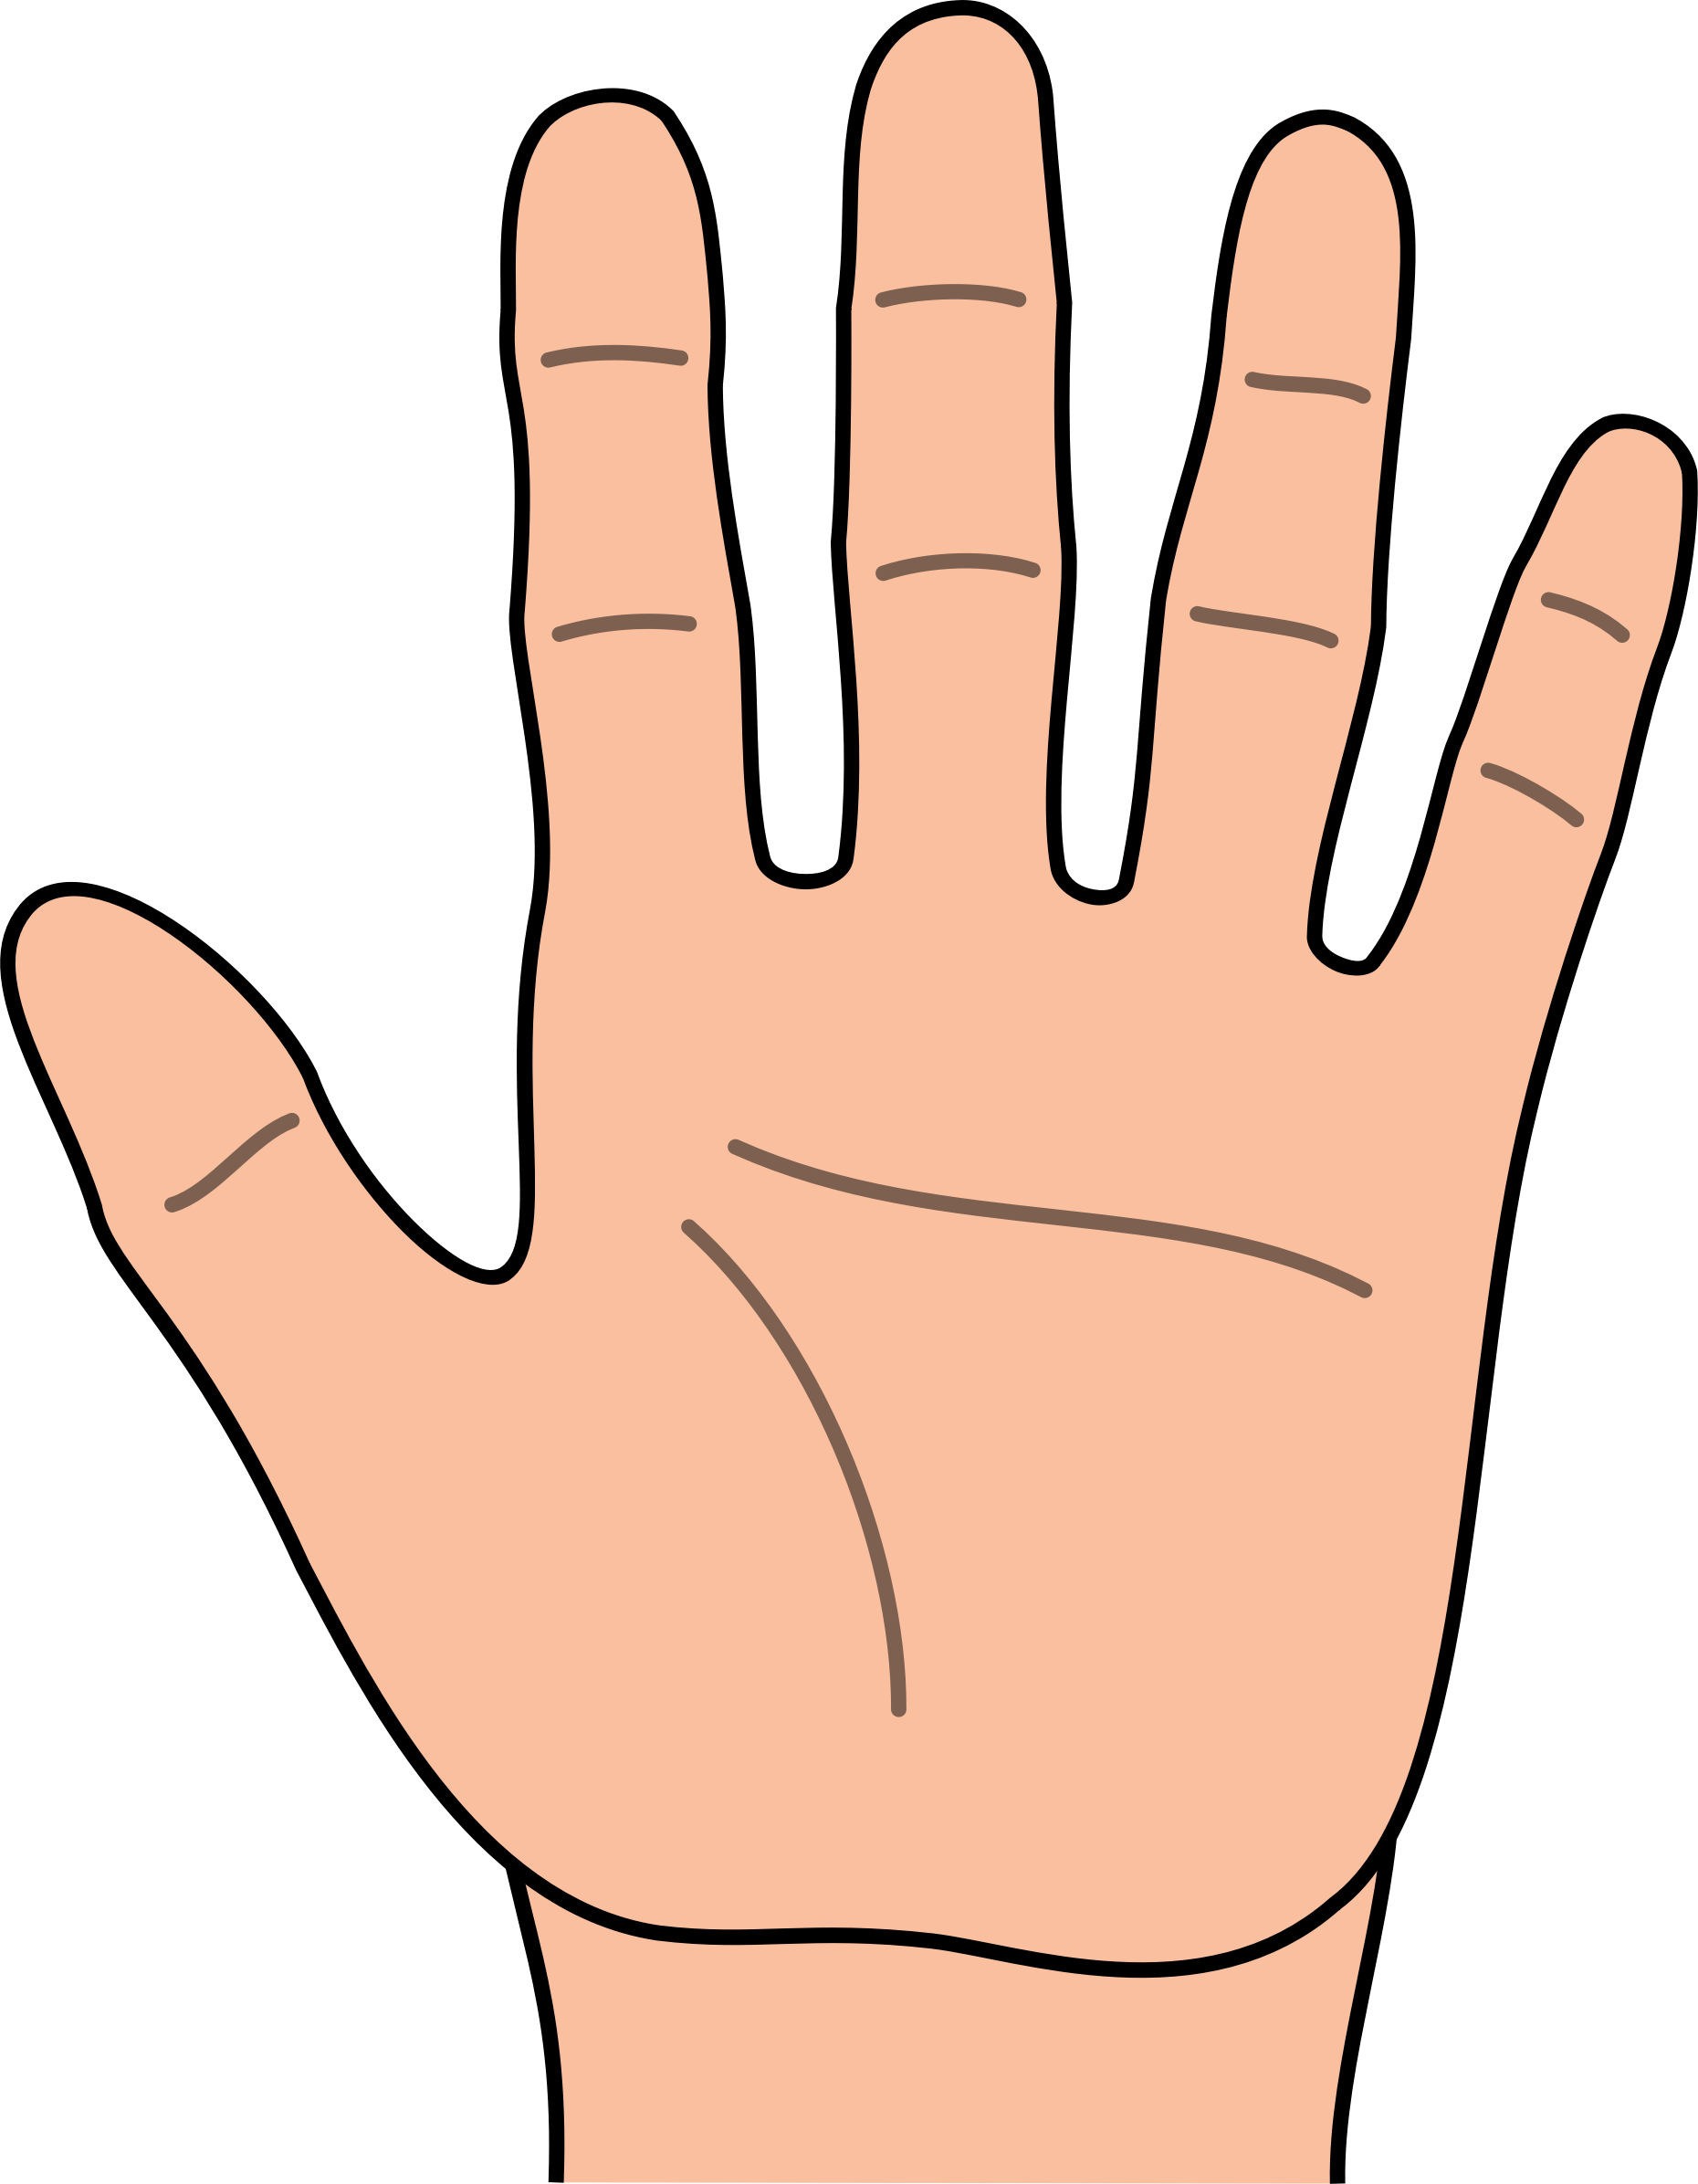 Hands clip art free. Fingers clipart left hand